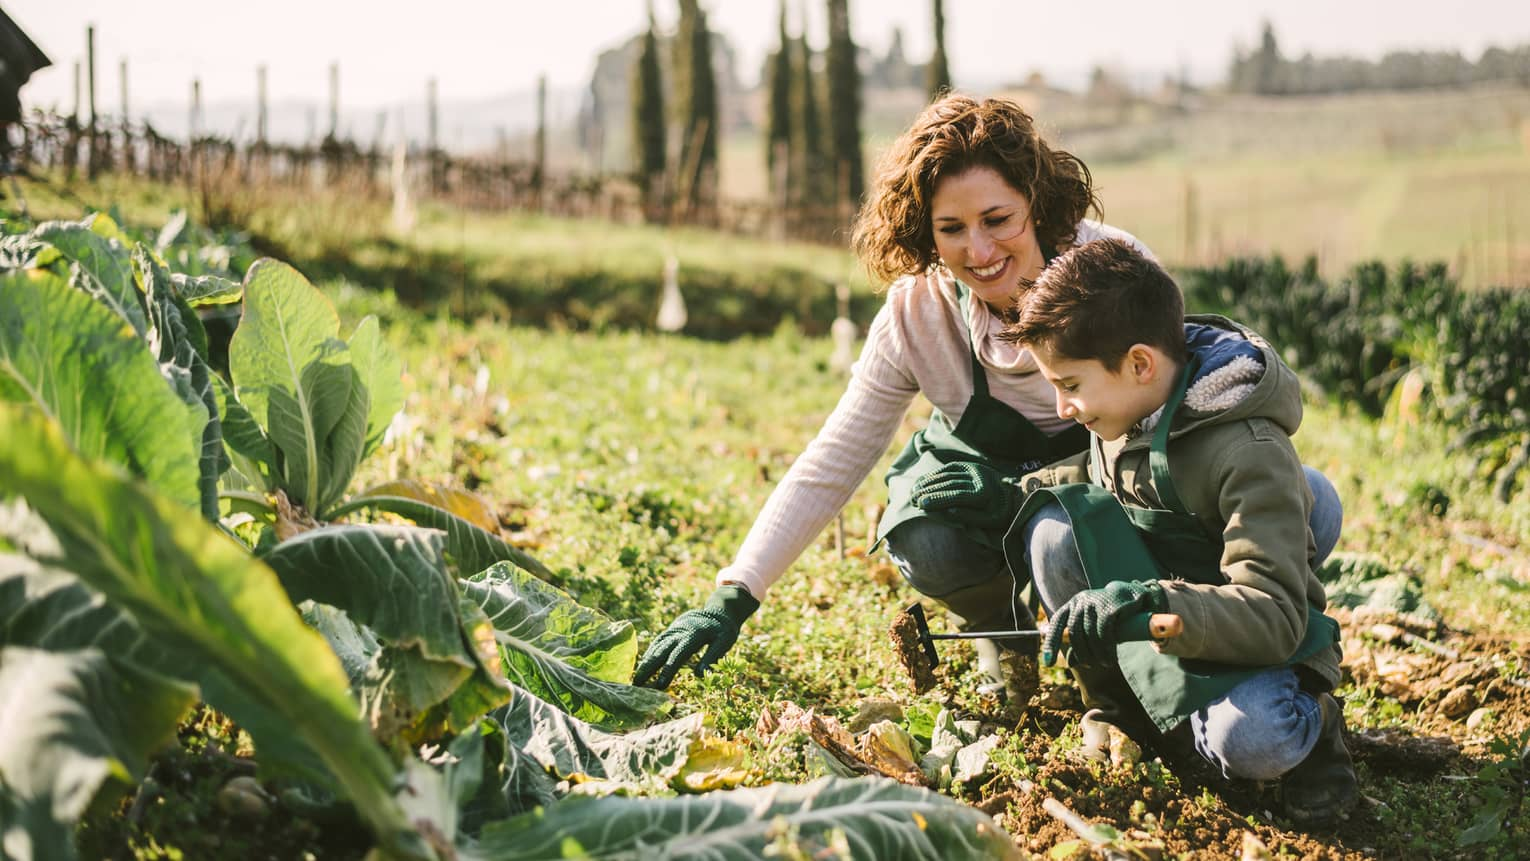 Woman and boy wearing aprons, gloves kneel in soil near large lettuce leaves in vegetable garden patch